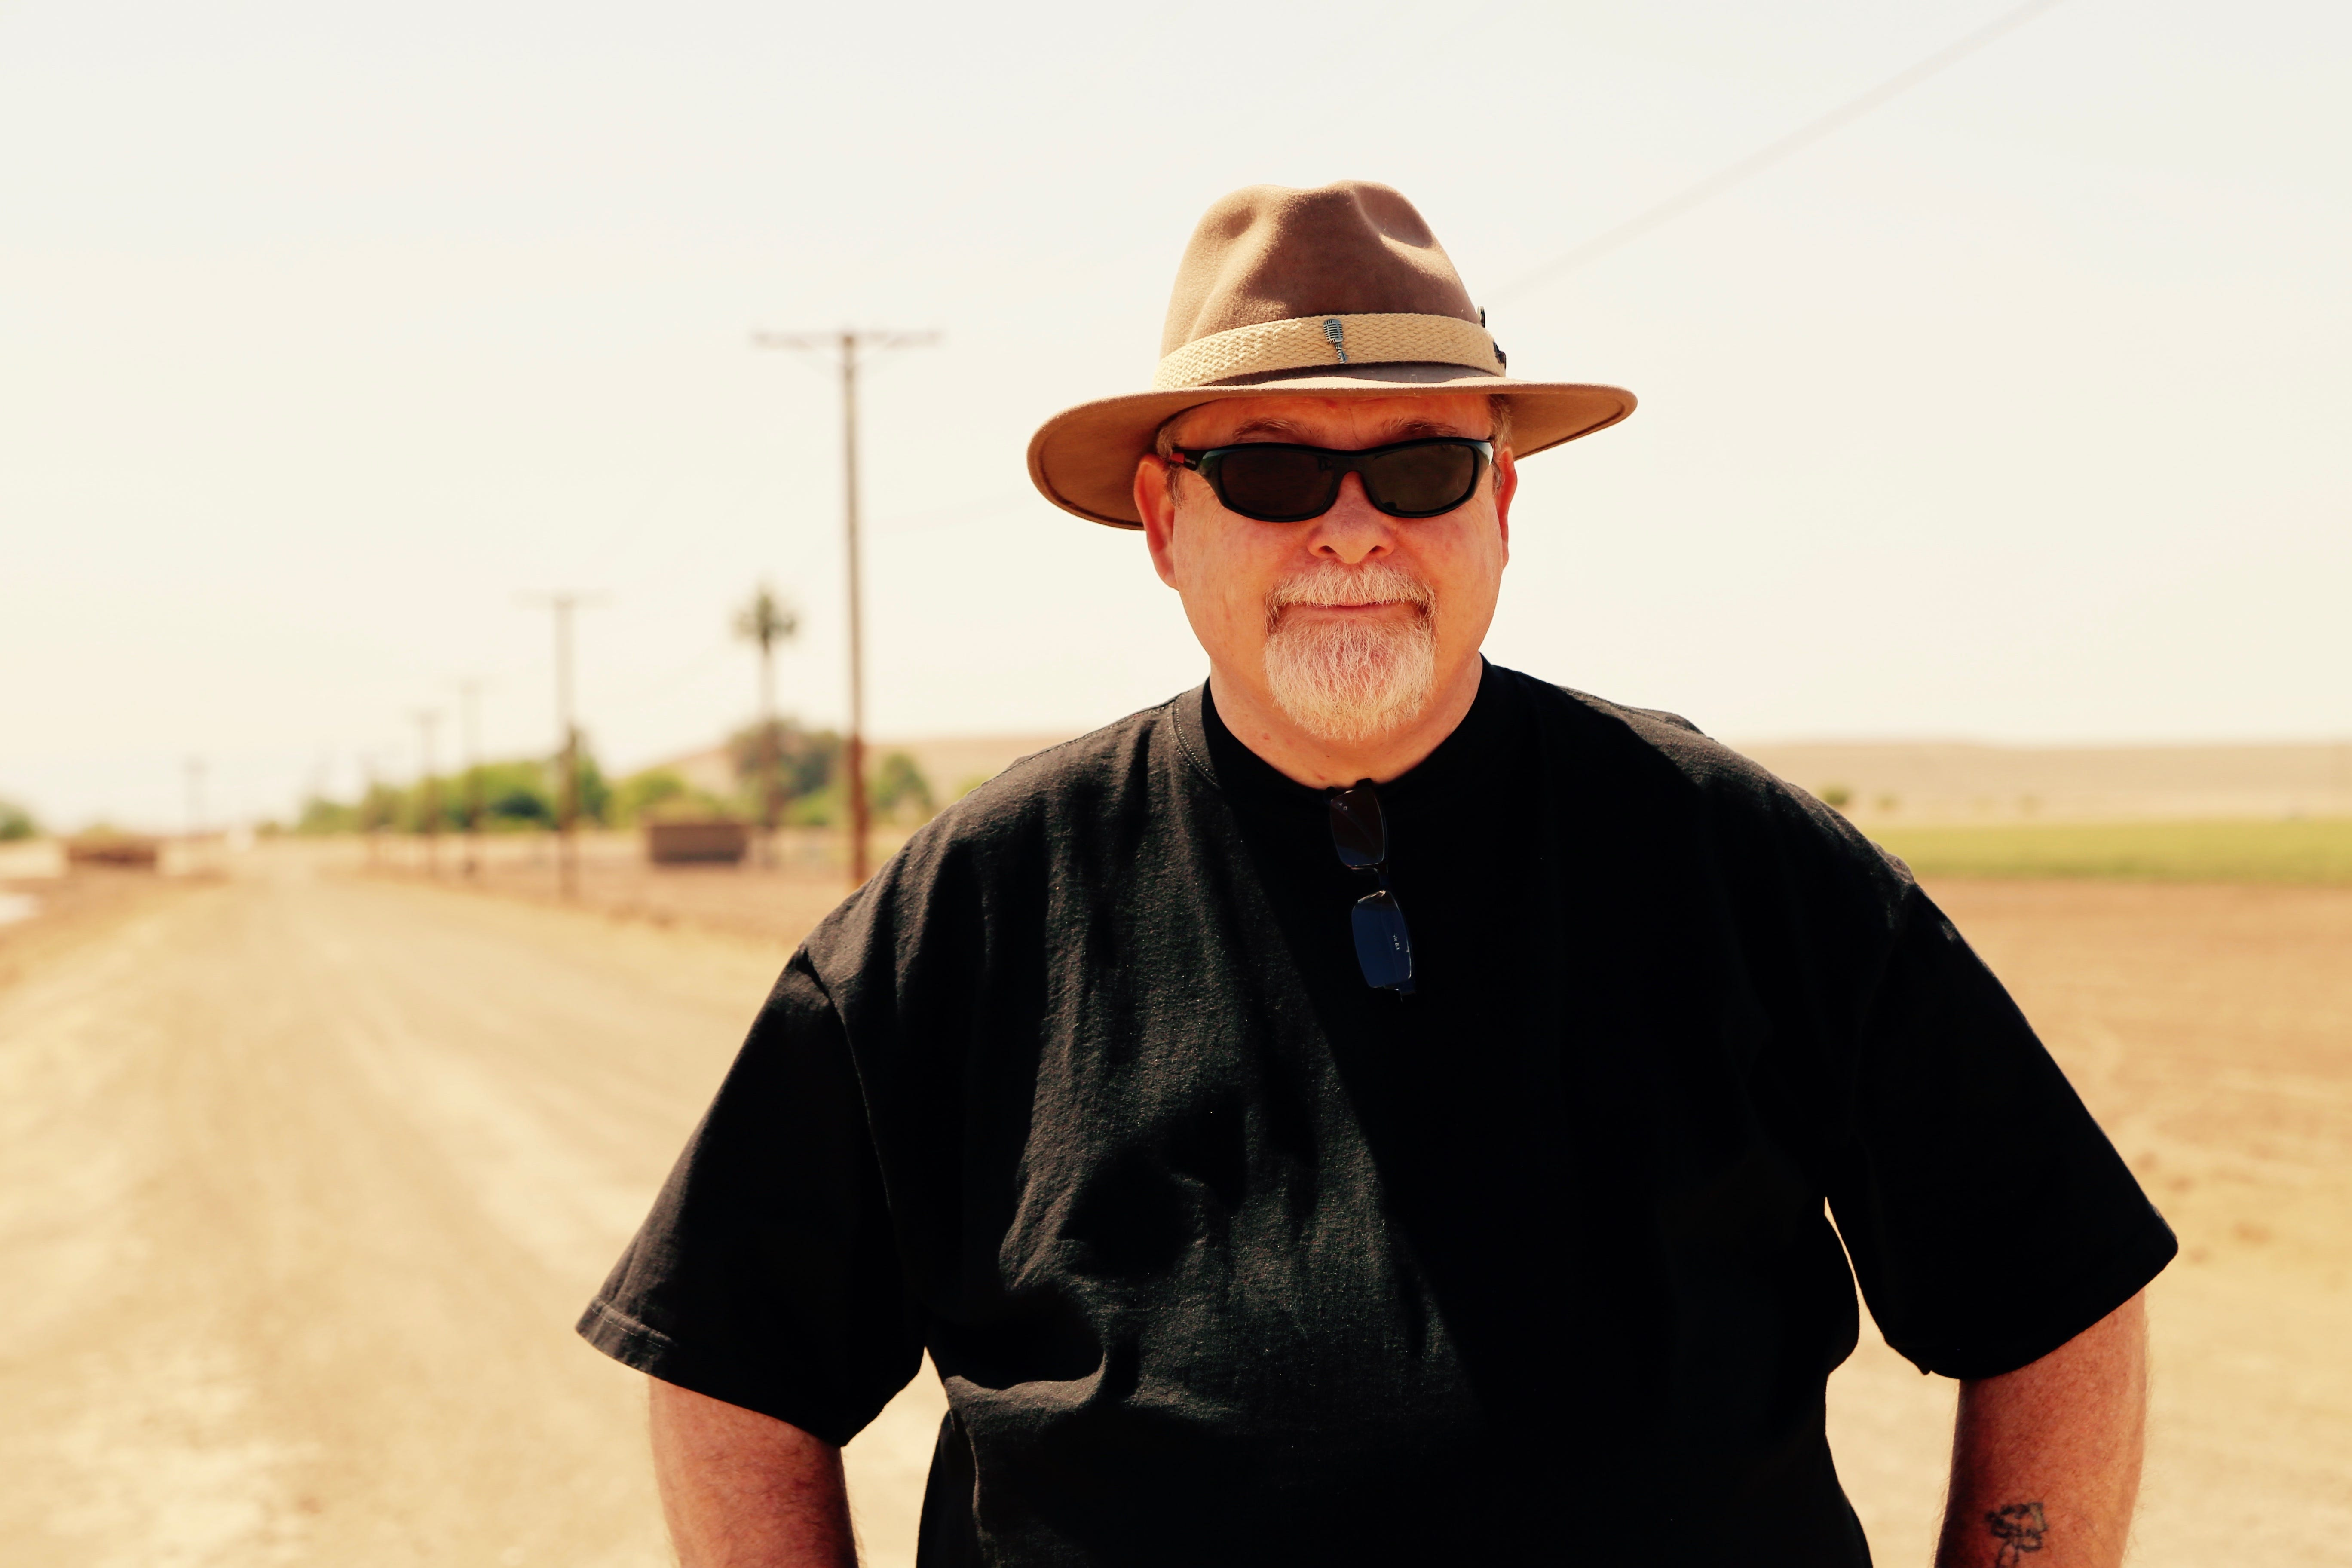 John Grasson stands at a dirt road intersection in Imperial, Calif., where he believes the lost ship of the desert may be buried.